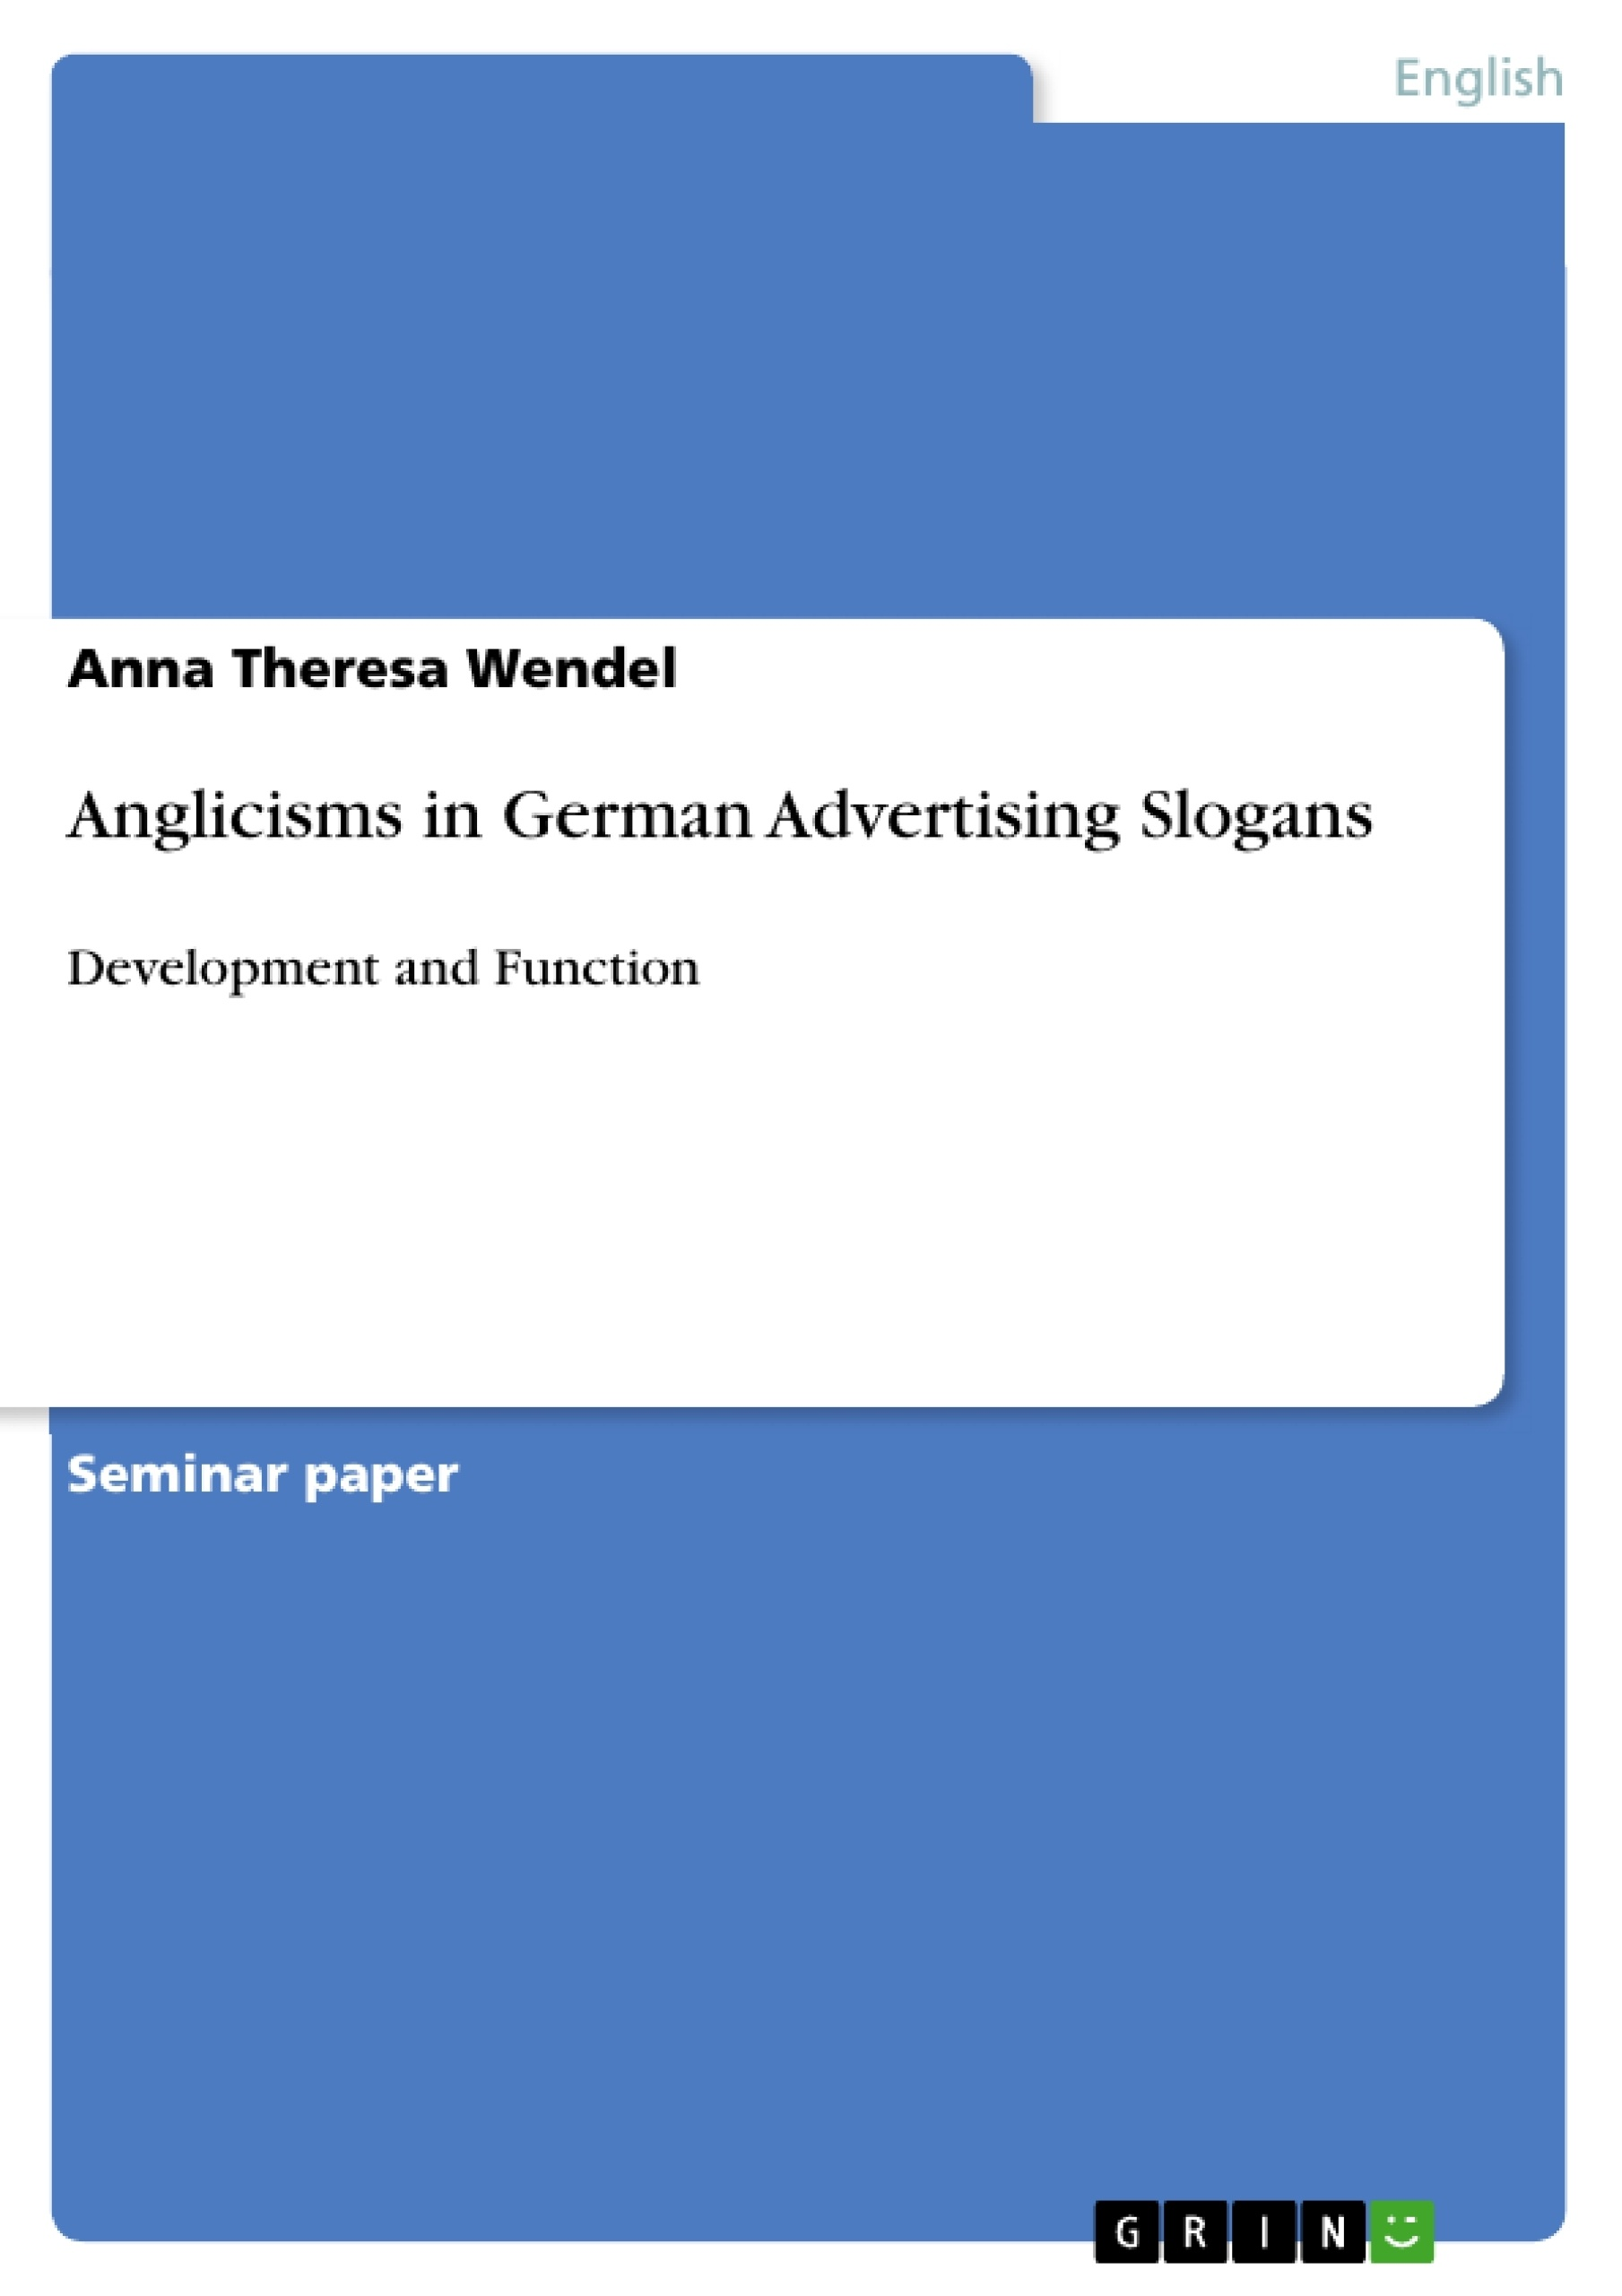 Title: Anglicisms in German Advertising Slogans